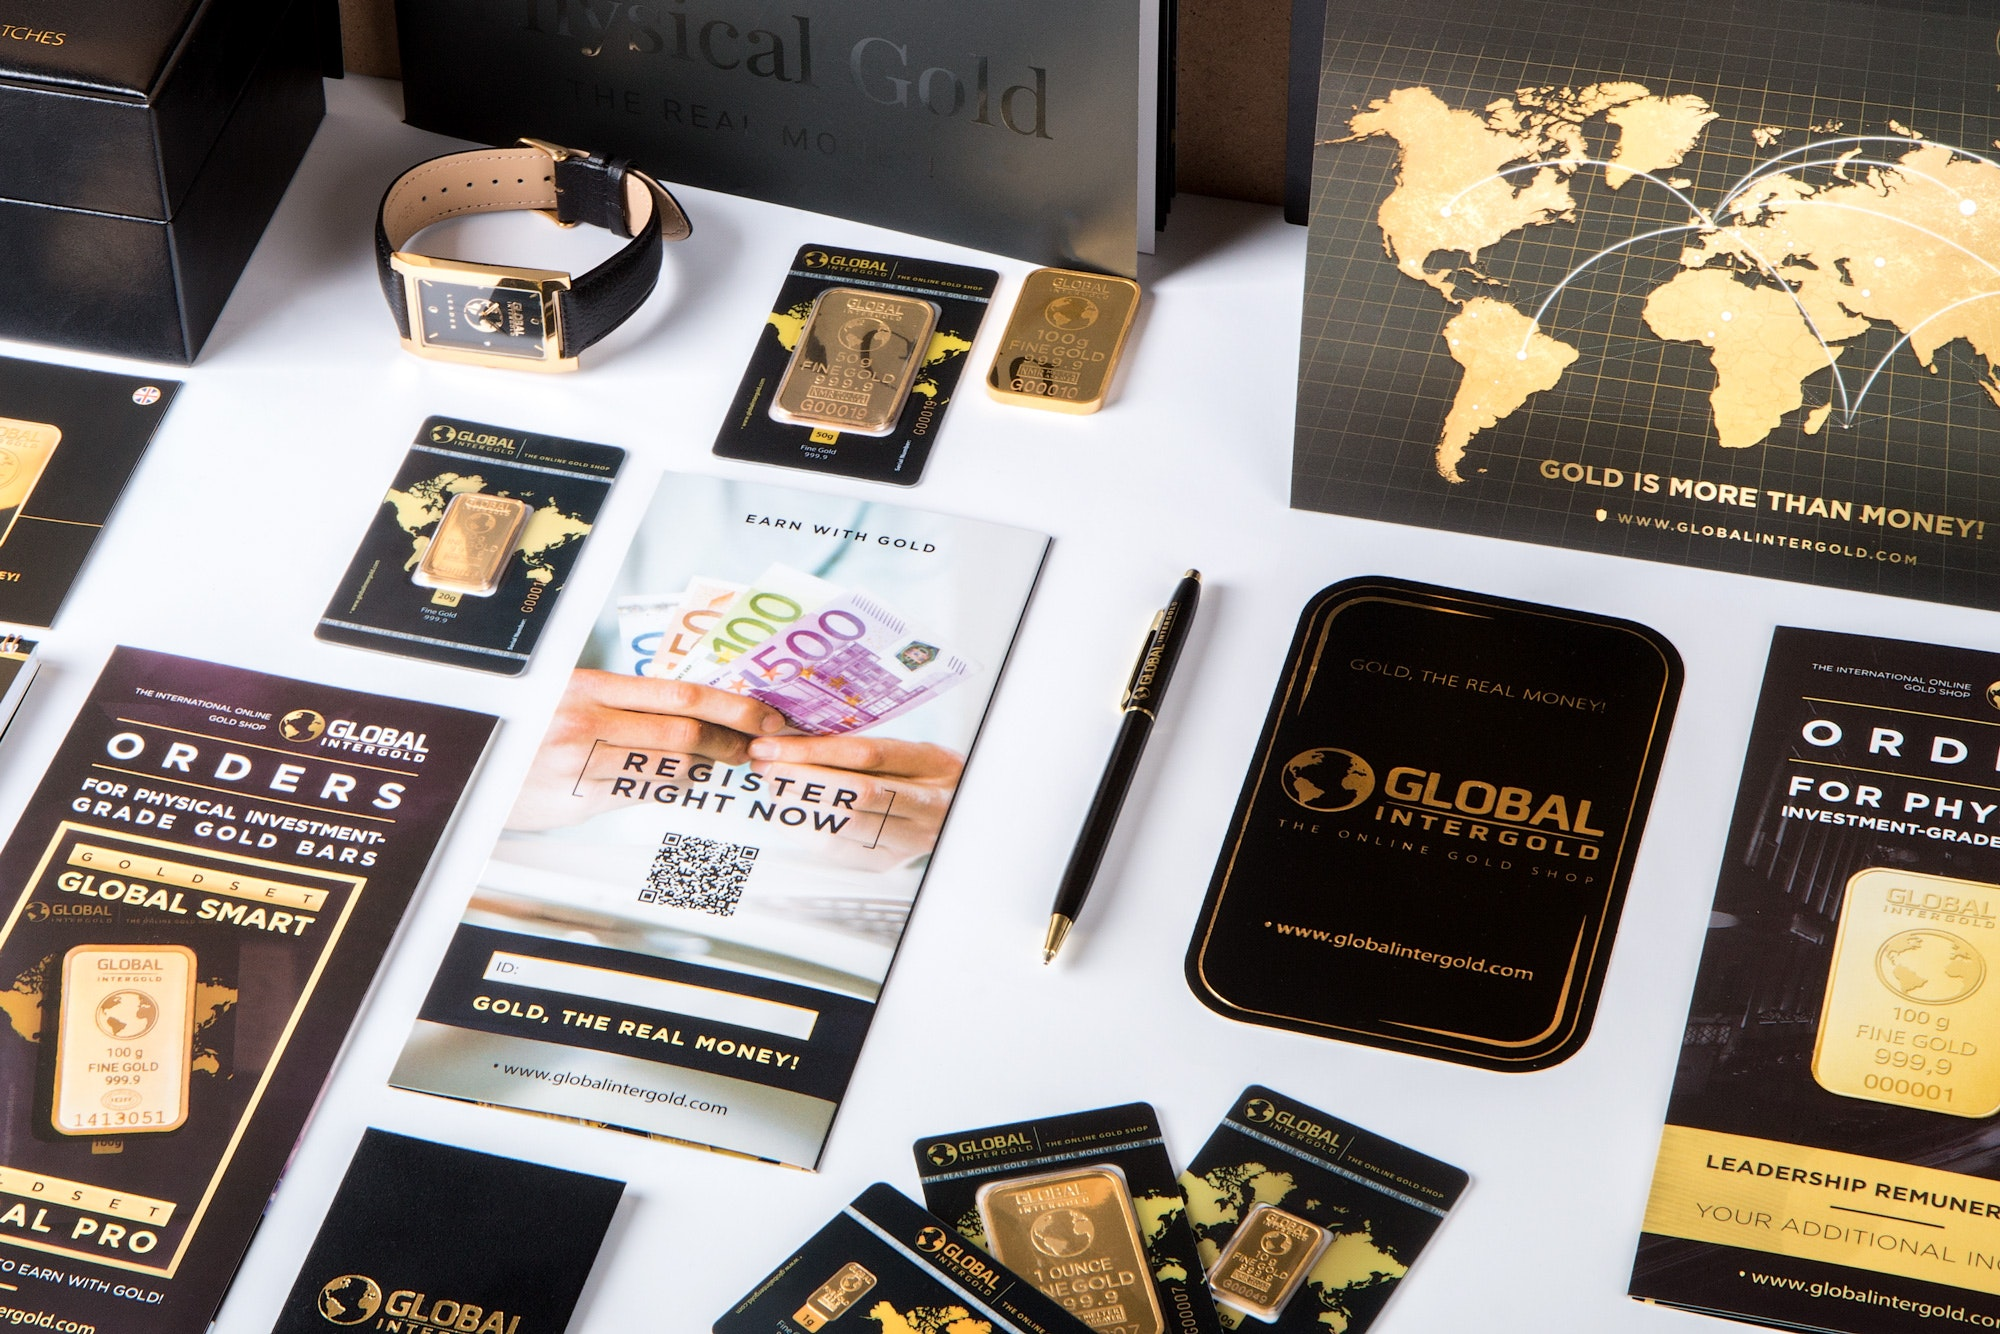 Printed Materials - Cards, Flyers, Pamphlets, Proposals, Stickers, Packaging and anything else you need professionally printed